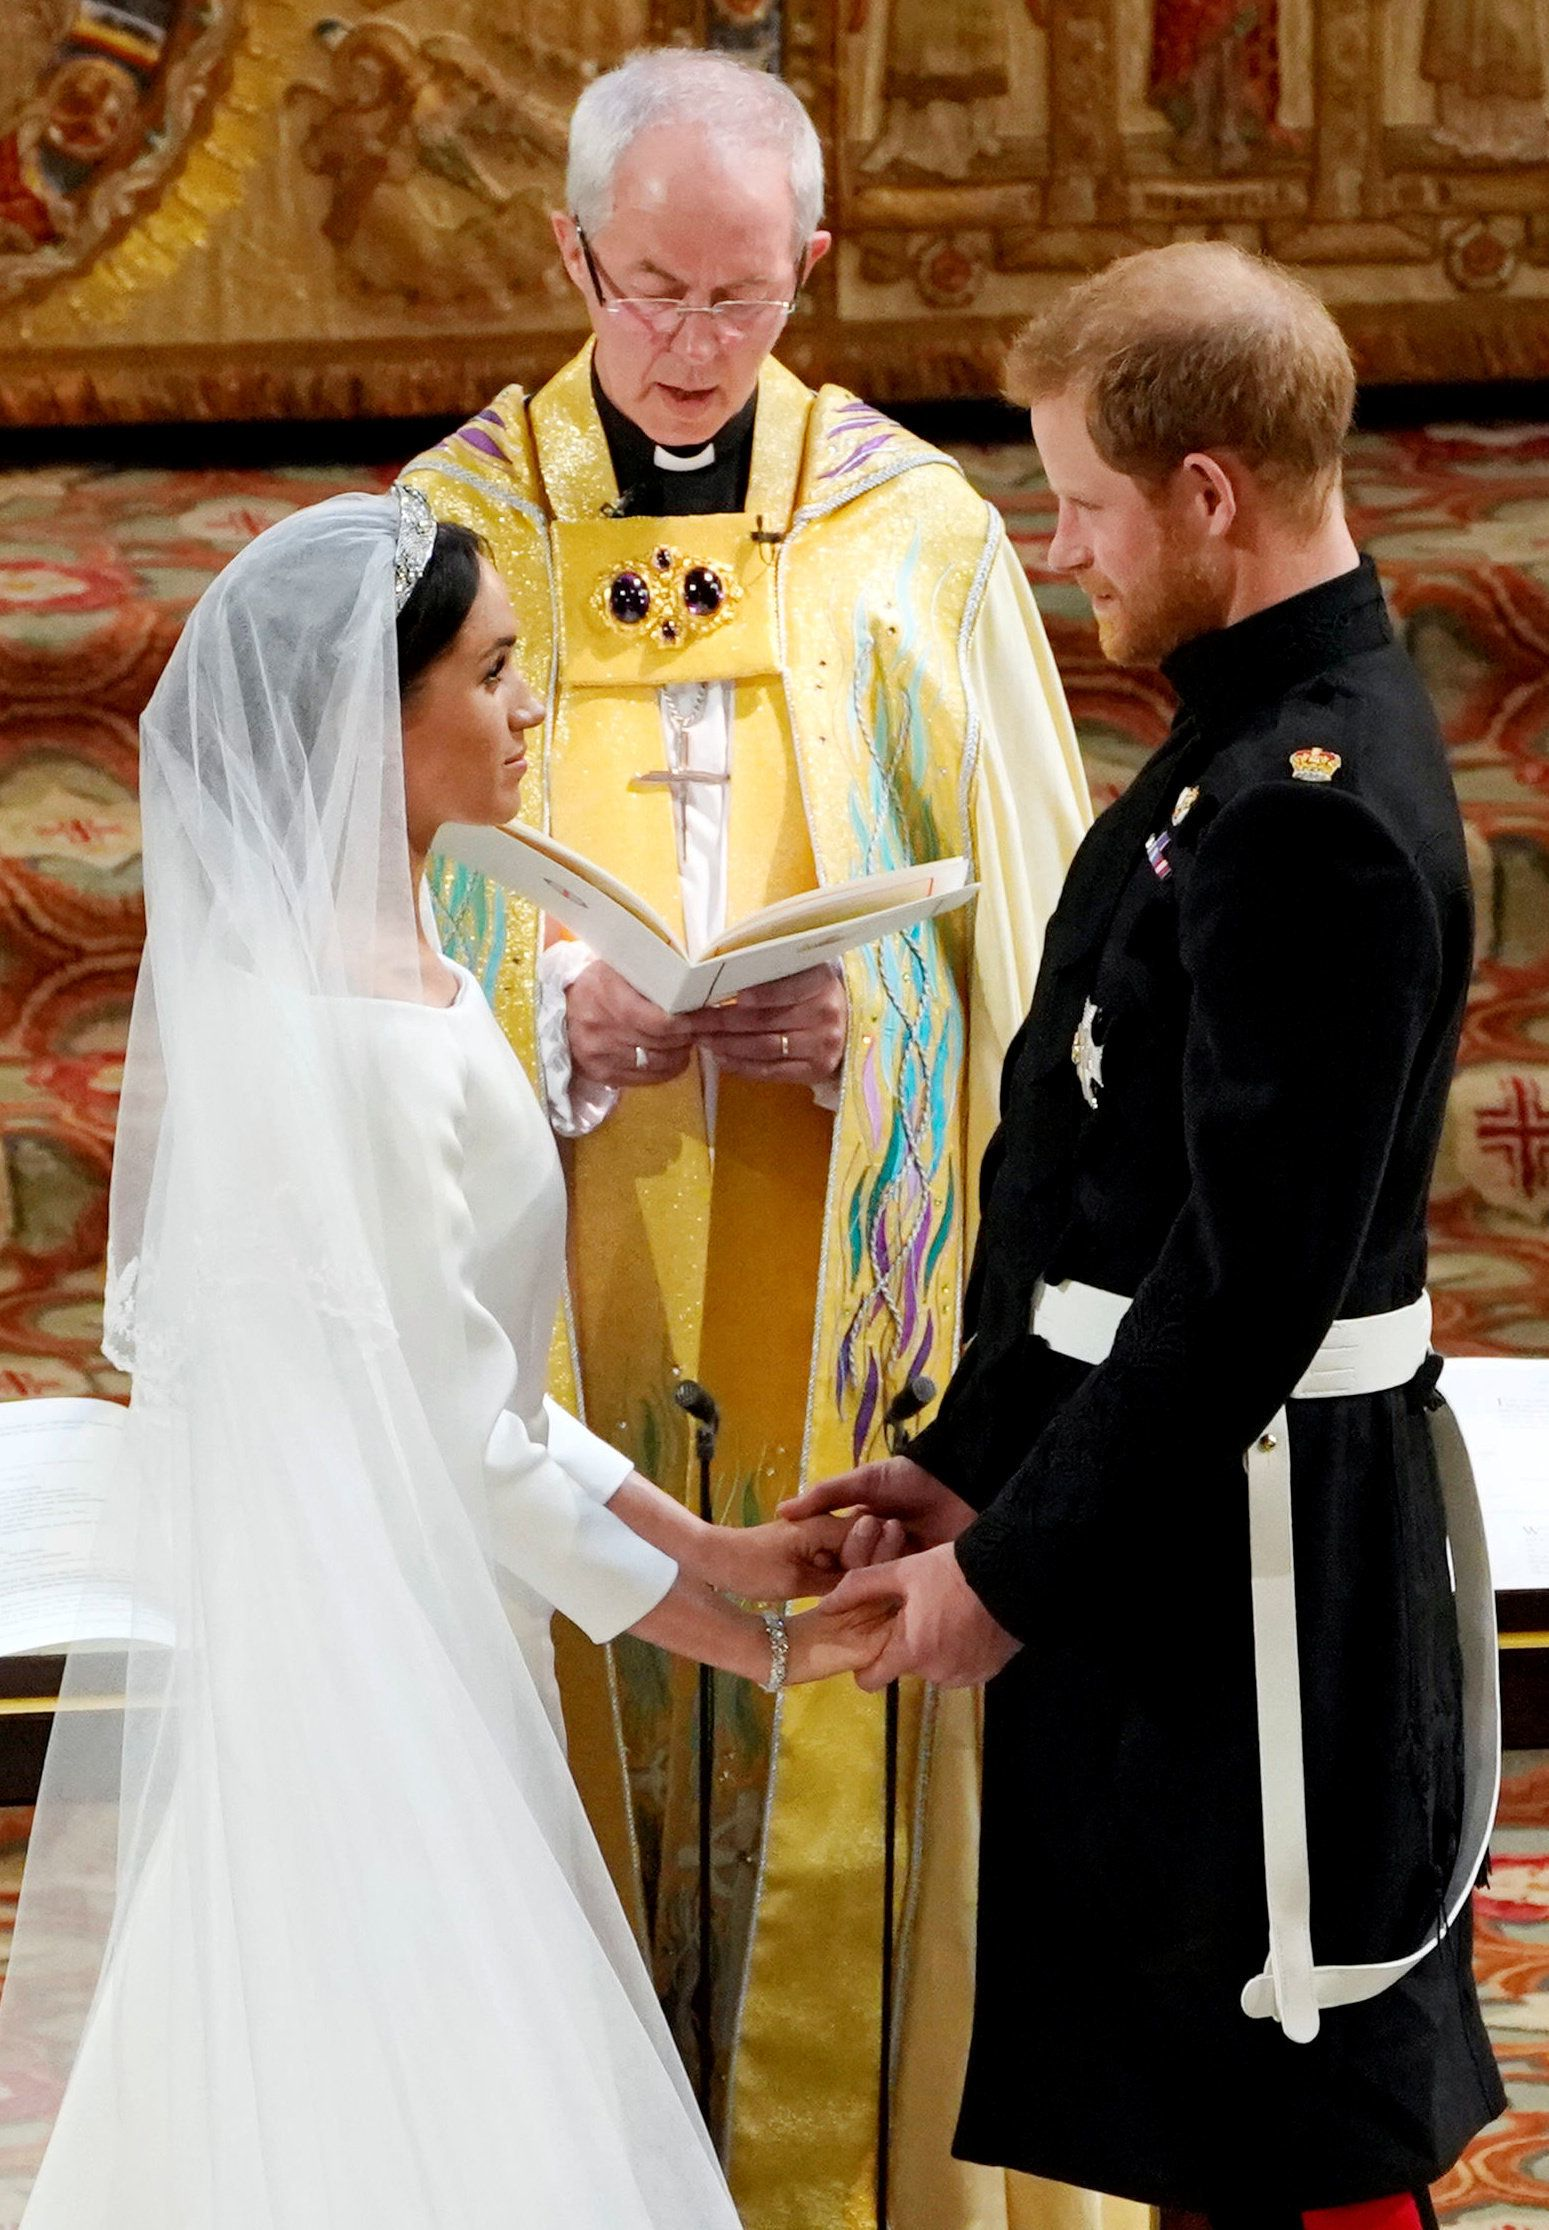 Prince Harry and Meghan Markle exchange vows in St George's Chapel at Windsor Castle during their wedding service, conducted